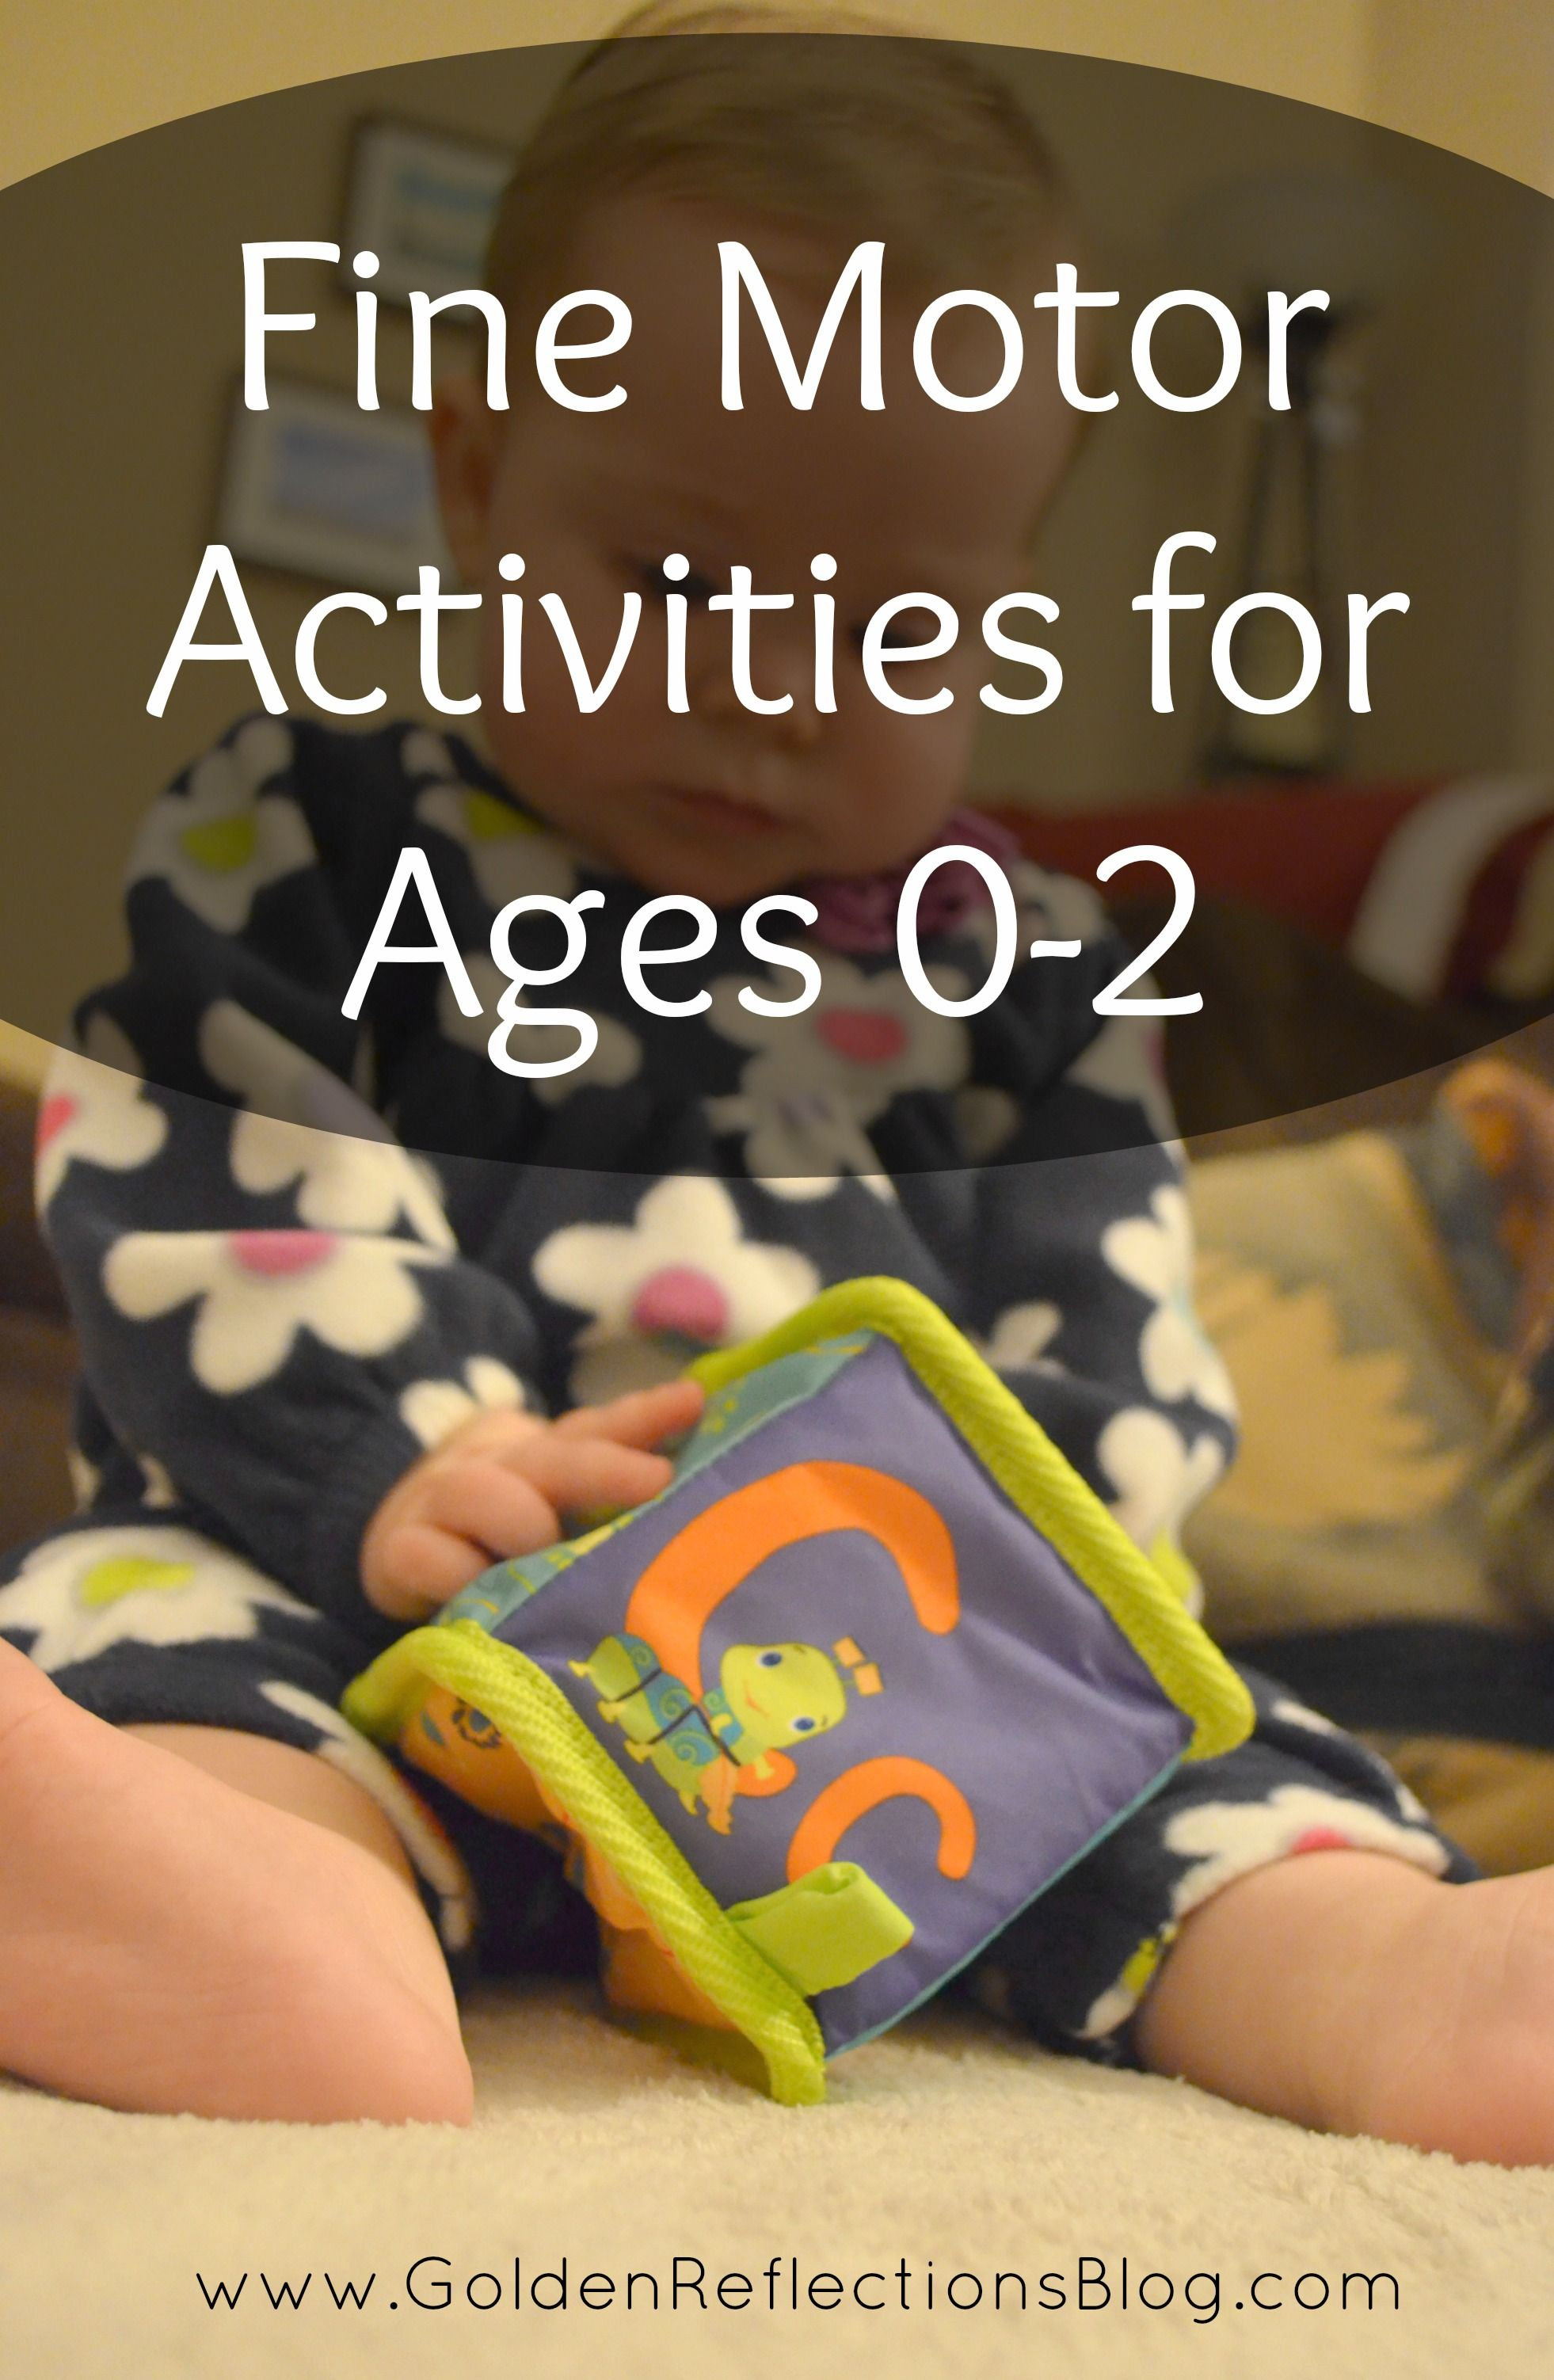 Crafts from balls. Development of creative abilities in children and adults 69